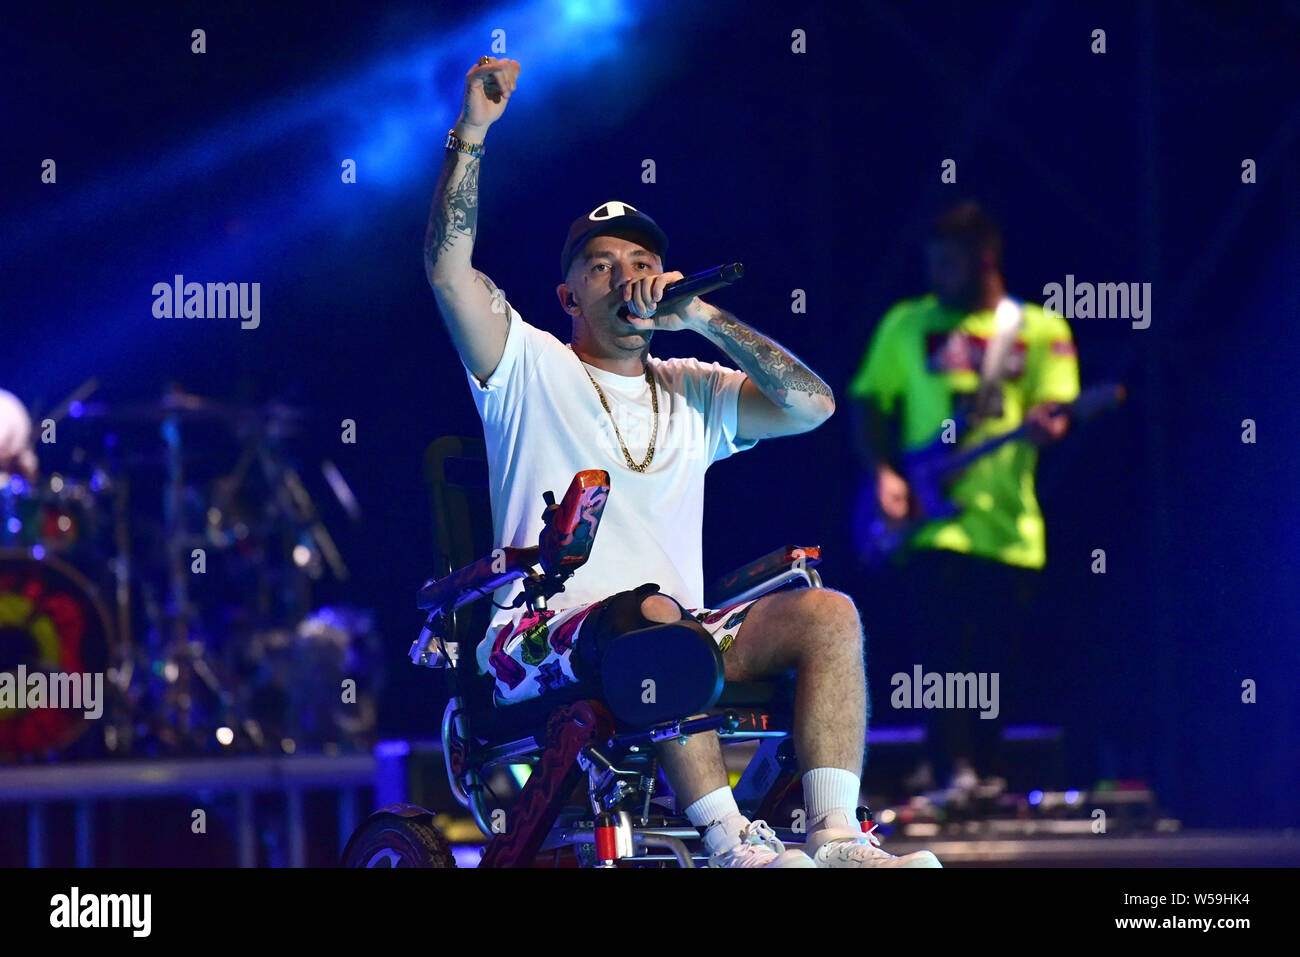 "Napoli, Italy. 26th July, 2019. The Italian rapper Maurizio Pisciottu aka Salmo performing live on stage for his ""Playlist"" summer tour concert in Napoli at the Arena Flegrea. Credit: Paola Visone/Pacific Press/Alamy Live News Stock Photo"